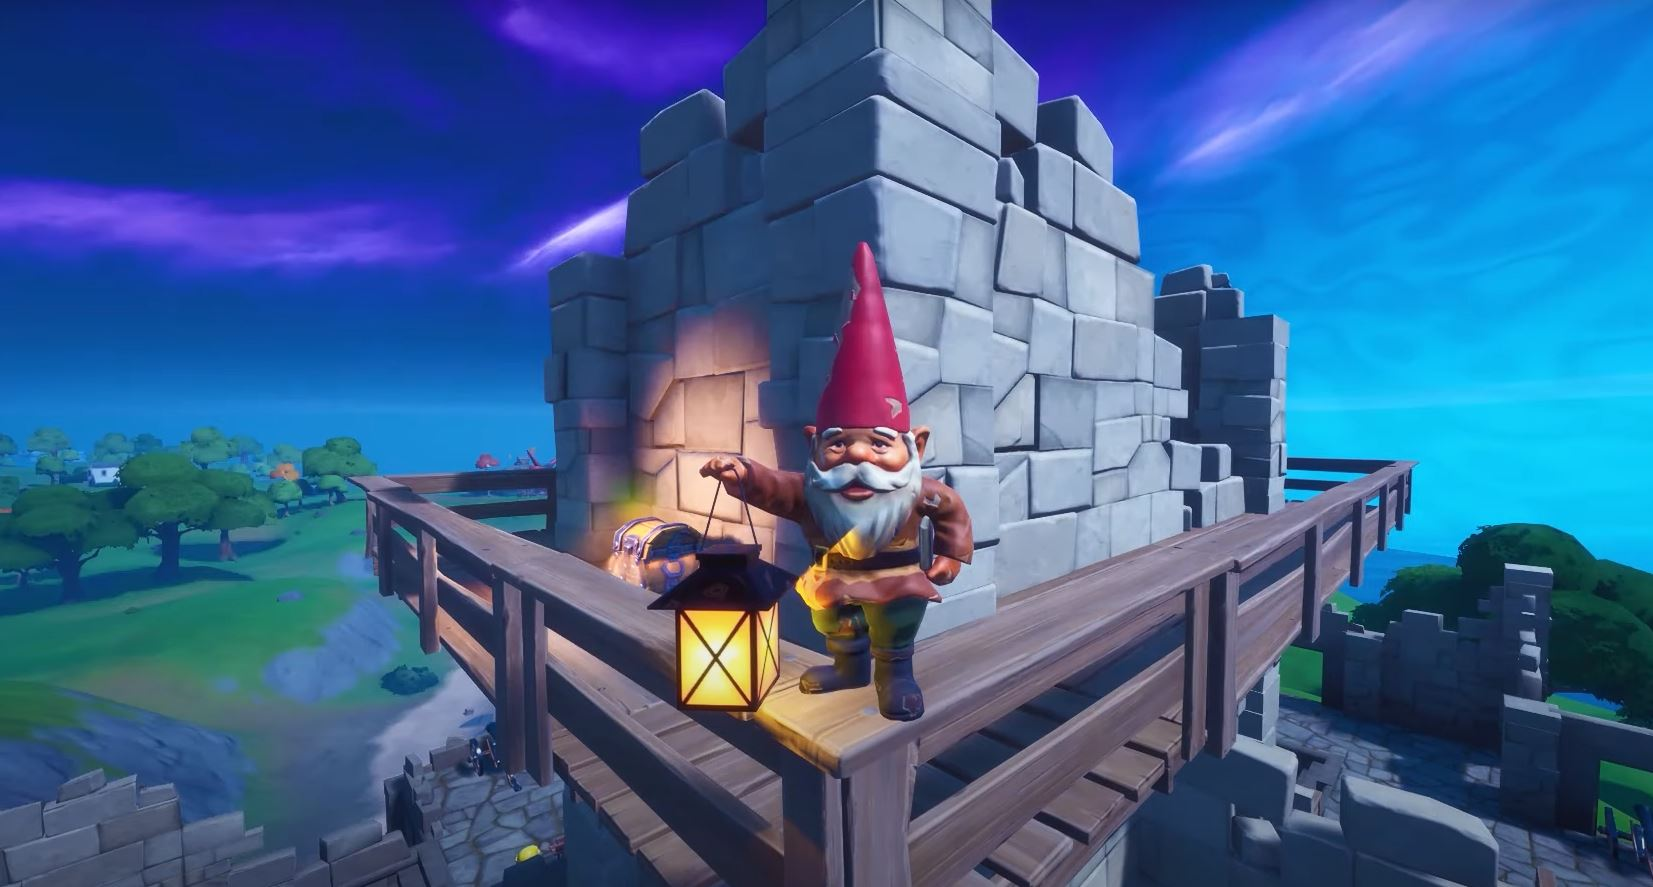 Fortnite Camp Cod Fort Crumpet Gnomes